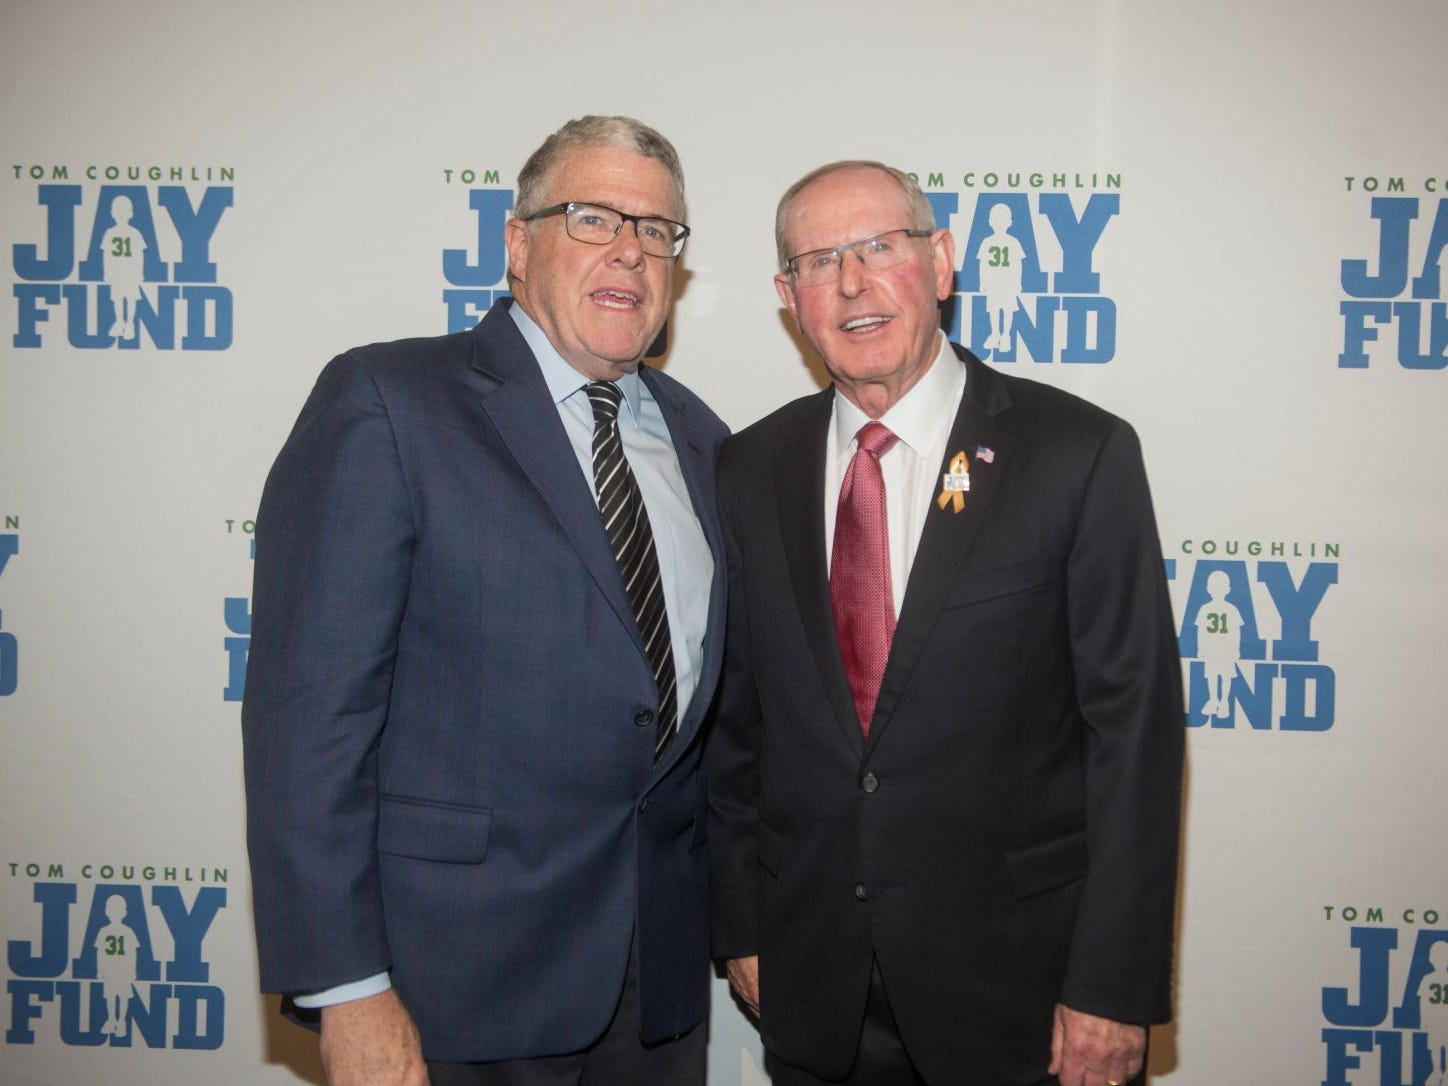 Peter King and Tom Coughlin. The 14th annual Jay Fund Champions for Children Gala was held at Cipriani 42nd Street. 09/21/2018